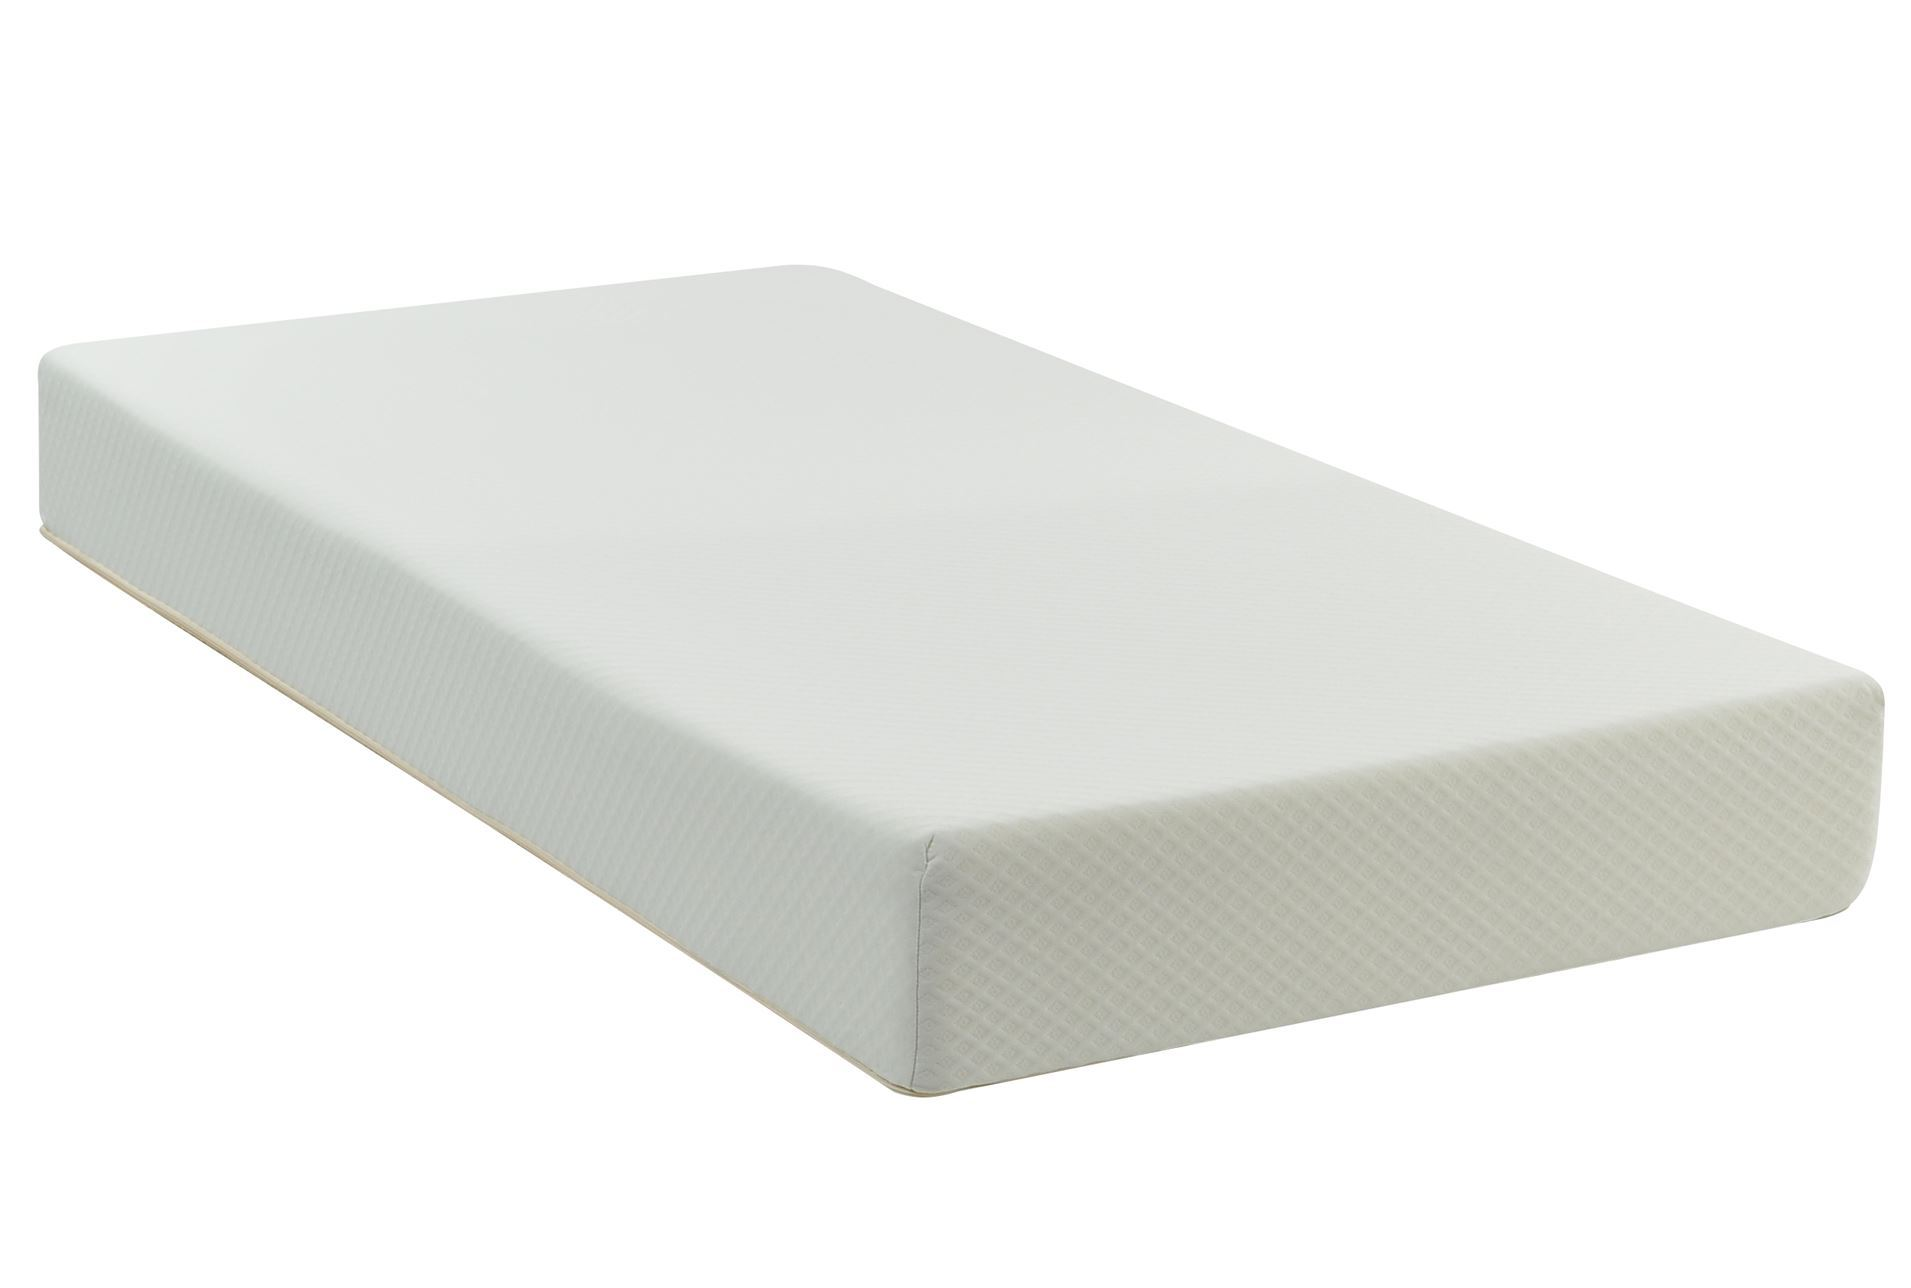 Twin size mattress dimensions Mattress twin size